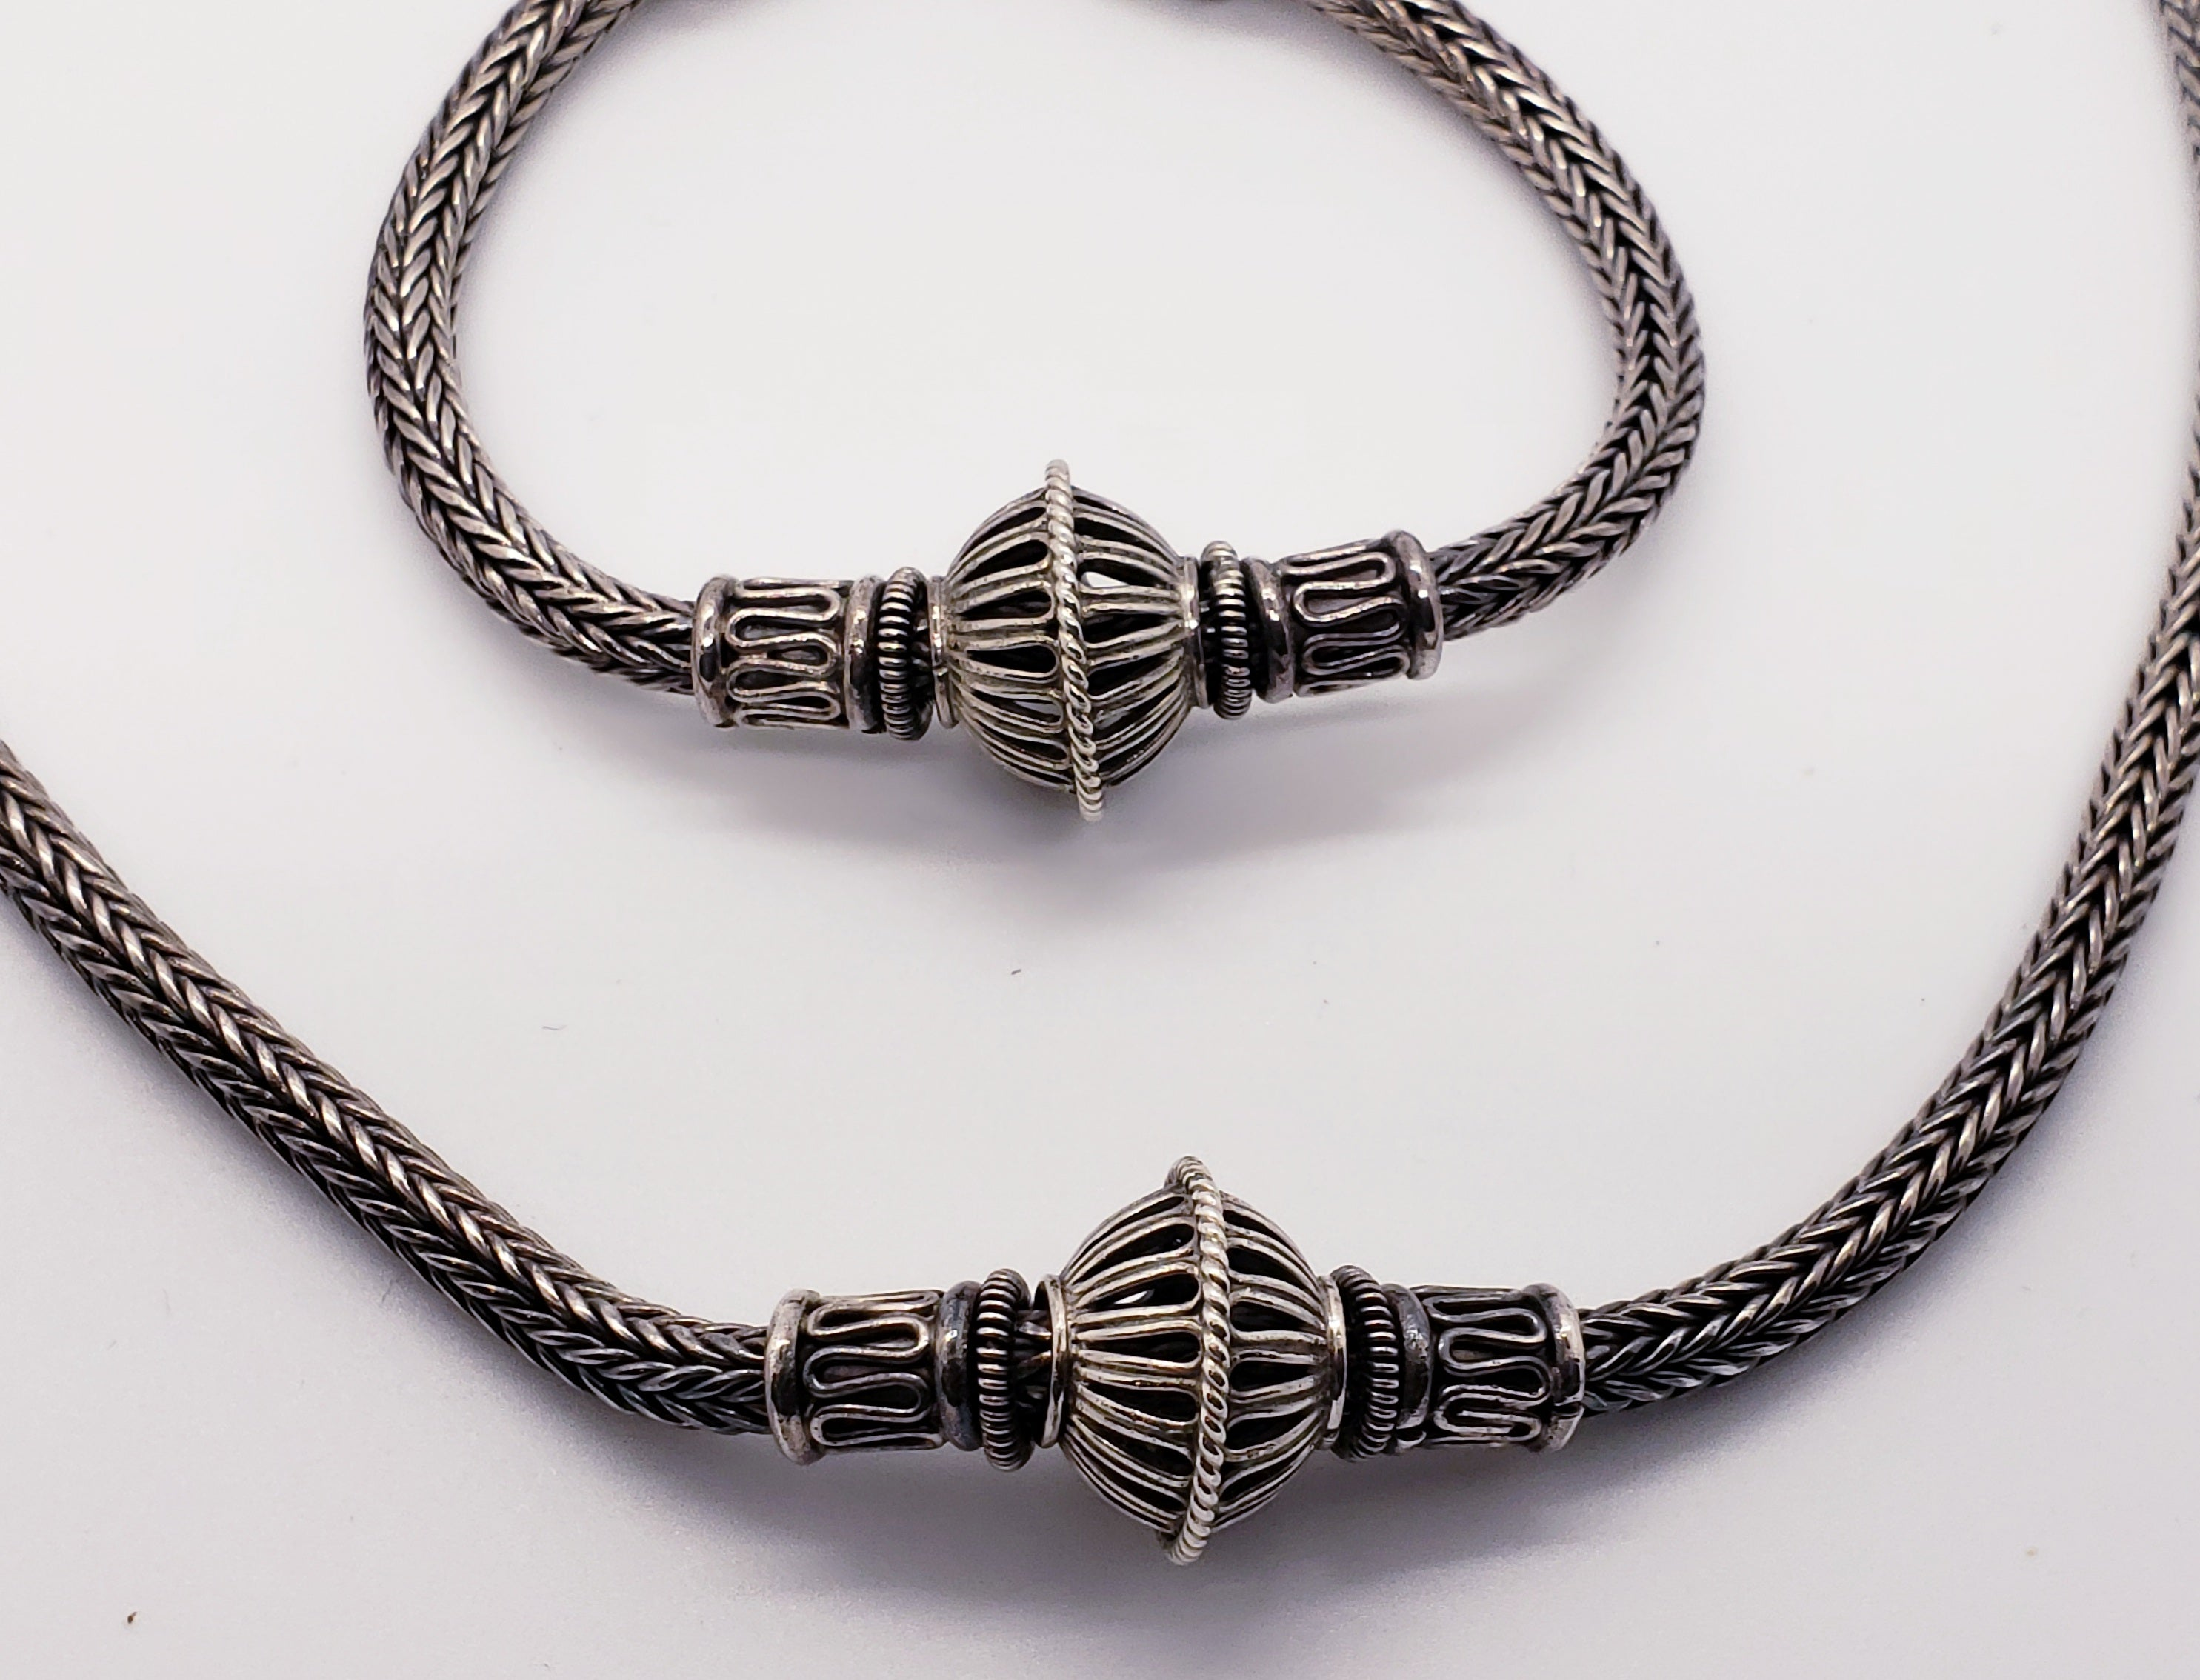 Sterling Silver Necklace and Bracelet Set from Thailand